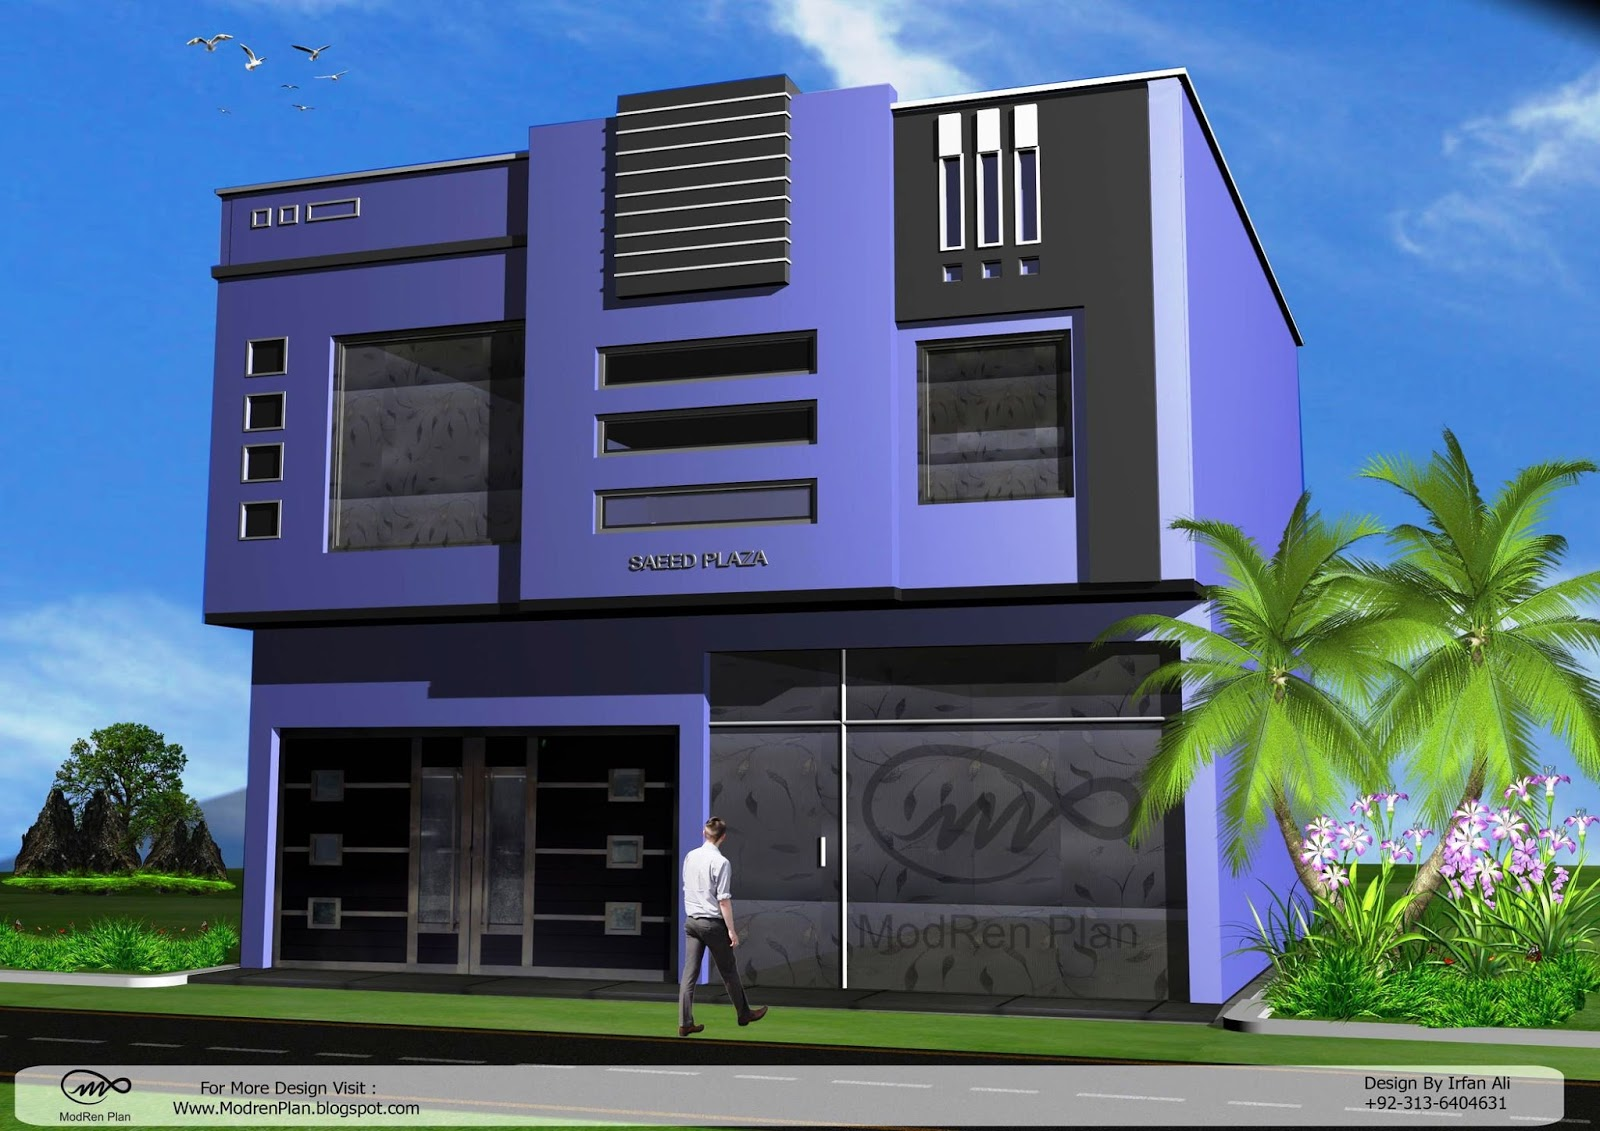 Front Elevation Of Building : Modern commercial building designs and plaza front elevation